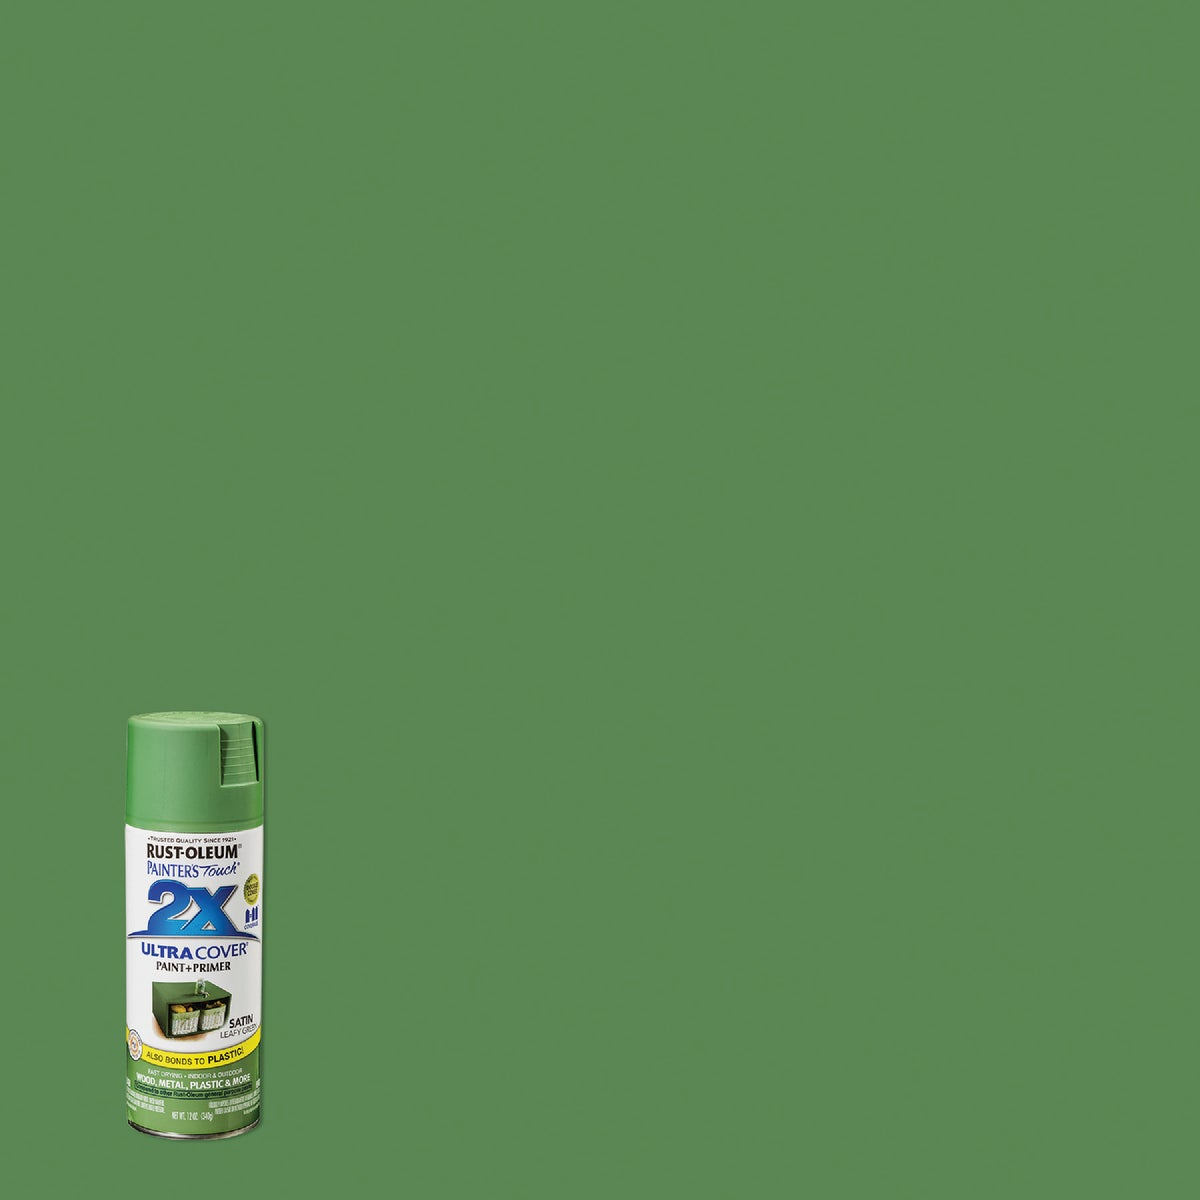 SAT LEAF GRN SPRAY PAINT - 249072 by Rustoleum